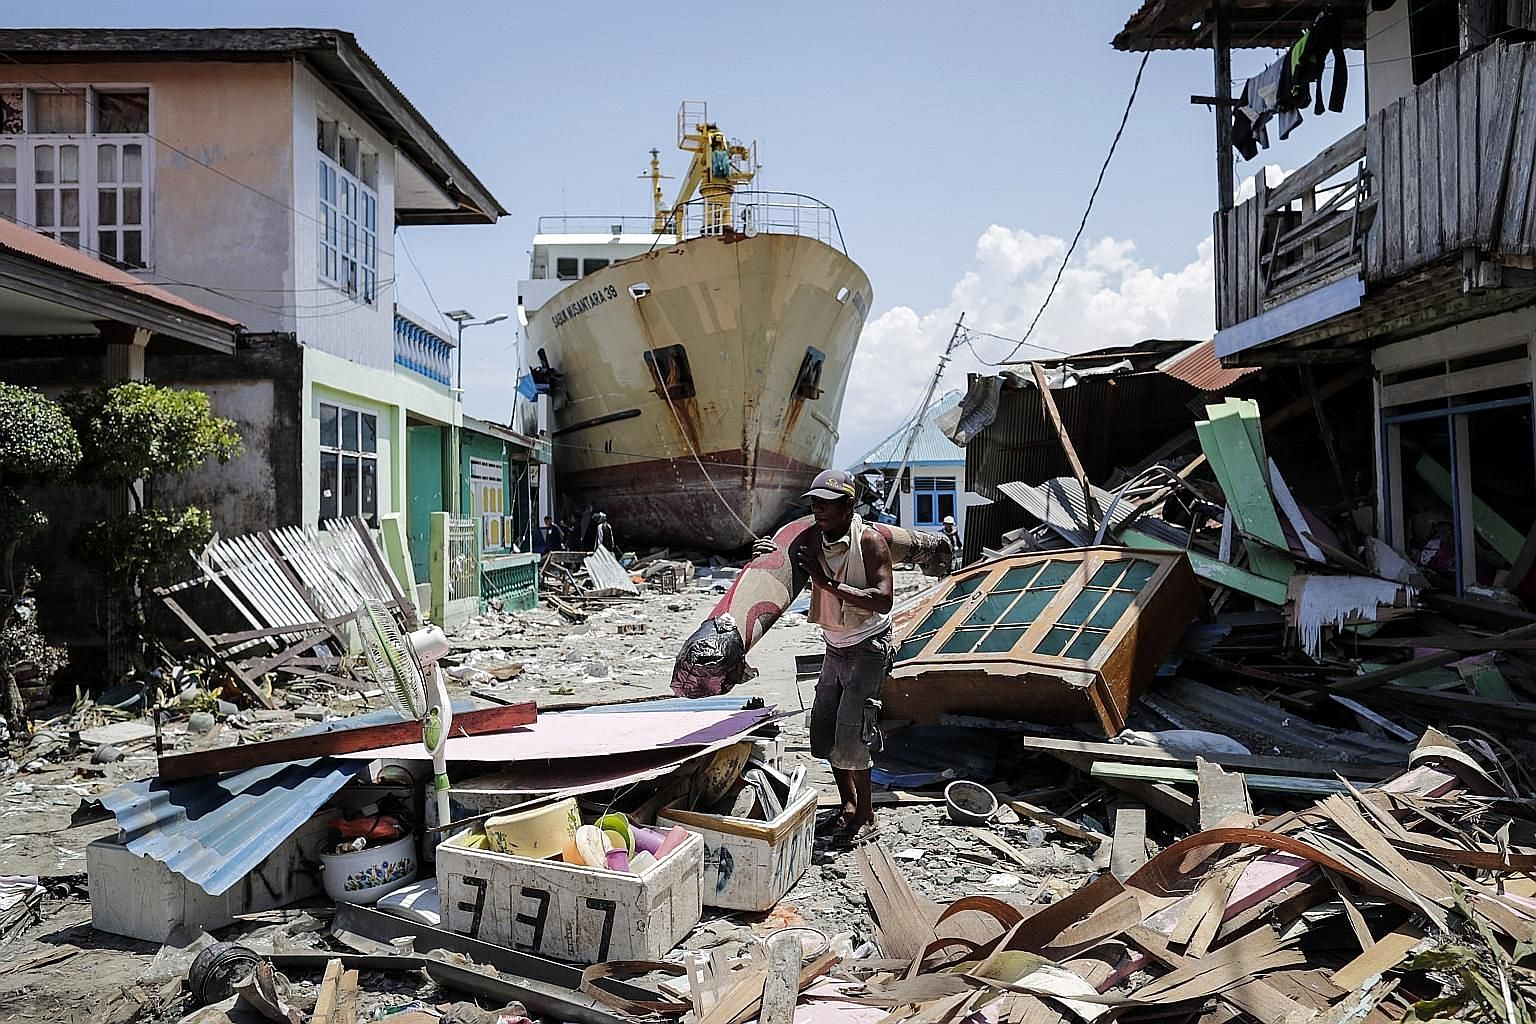 A stranded ship in Central Sulawesi, Indonesia, after a series of powerful earthquakes hit the area on Sept 28, triggering a tsunami. Almost 3,000 people were killed in Indonesia in the last three months or so from earthquakes, aftershocks and a Lion